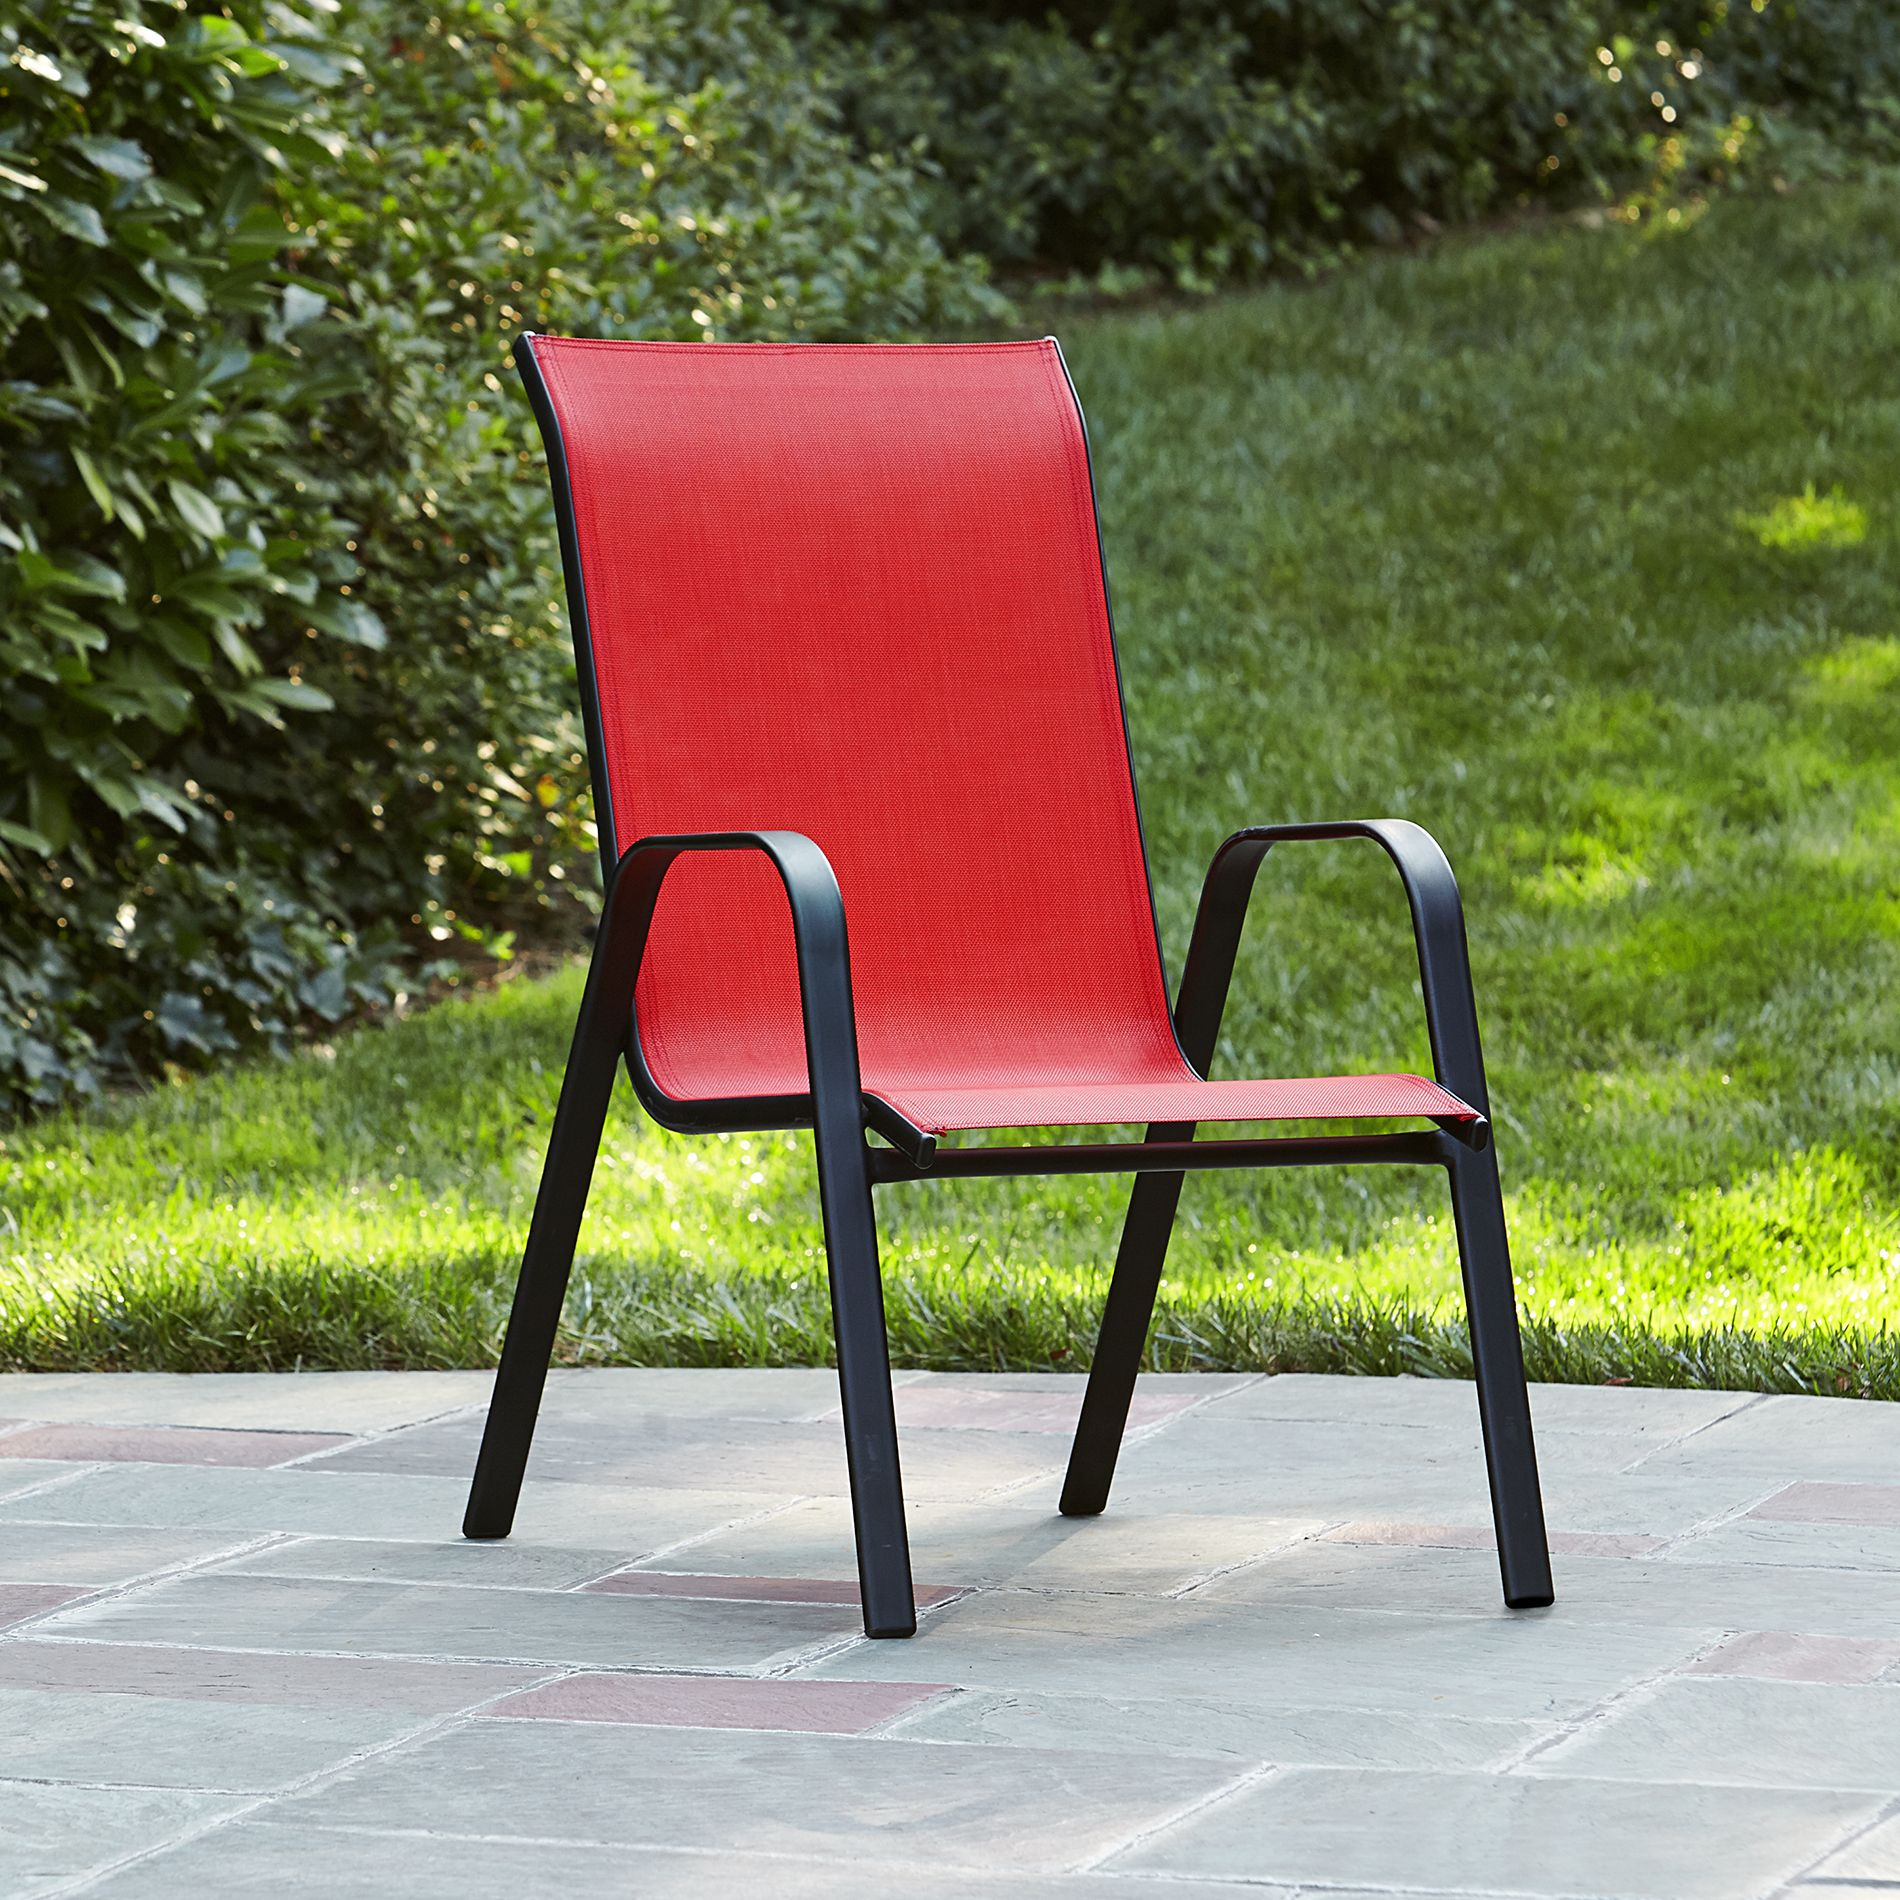 Red Patio Chairs Red Patio Chairs Affordable Furniture Home Set Chair Patio